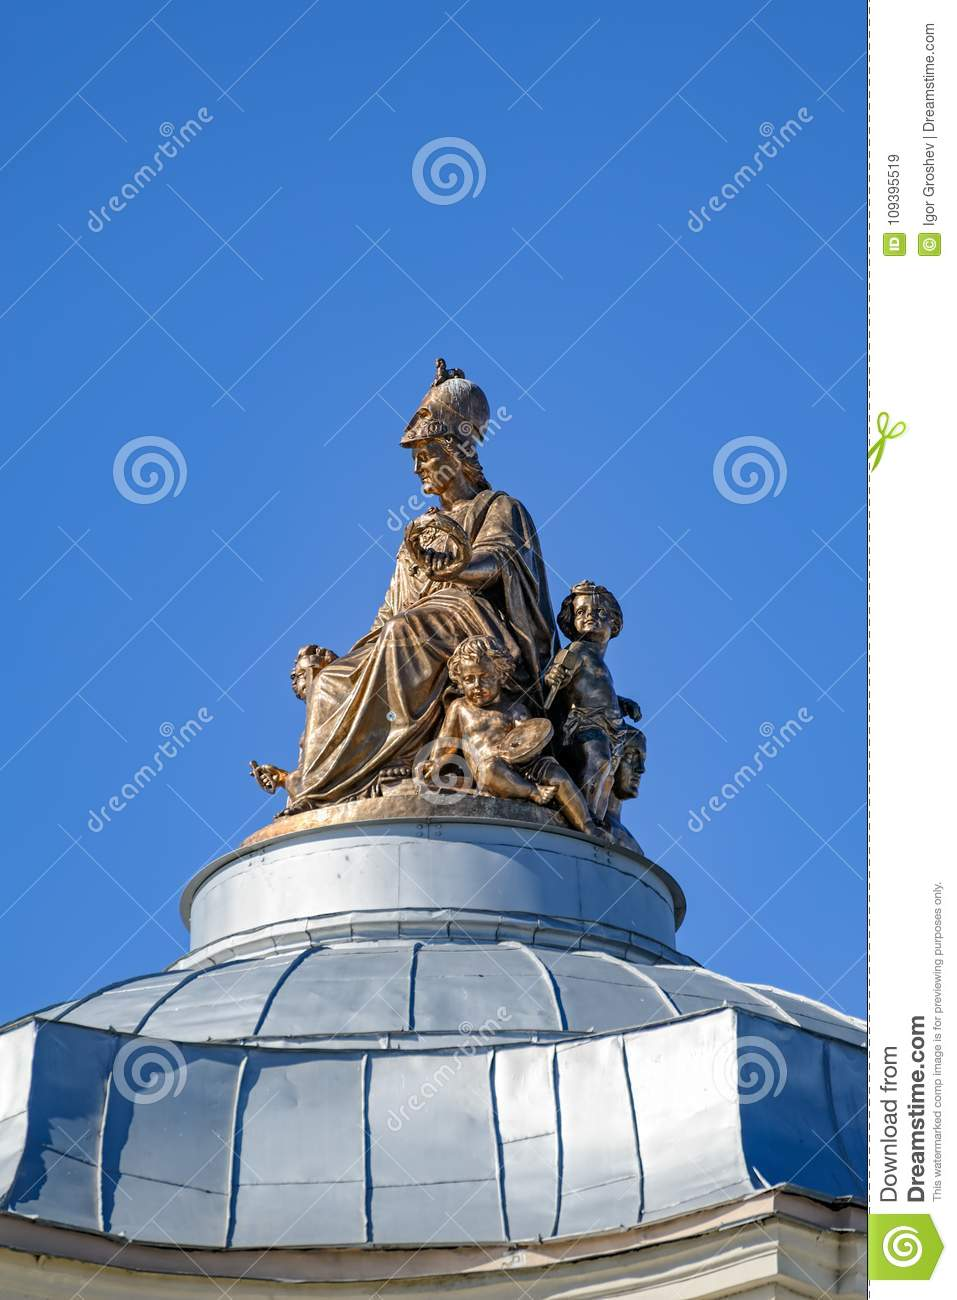 Statue Of Minerva On The Dome Of The Academy Of Fine Arts In